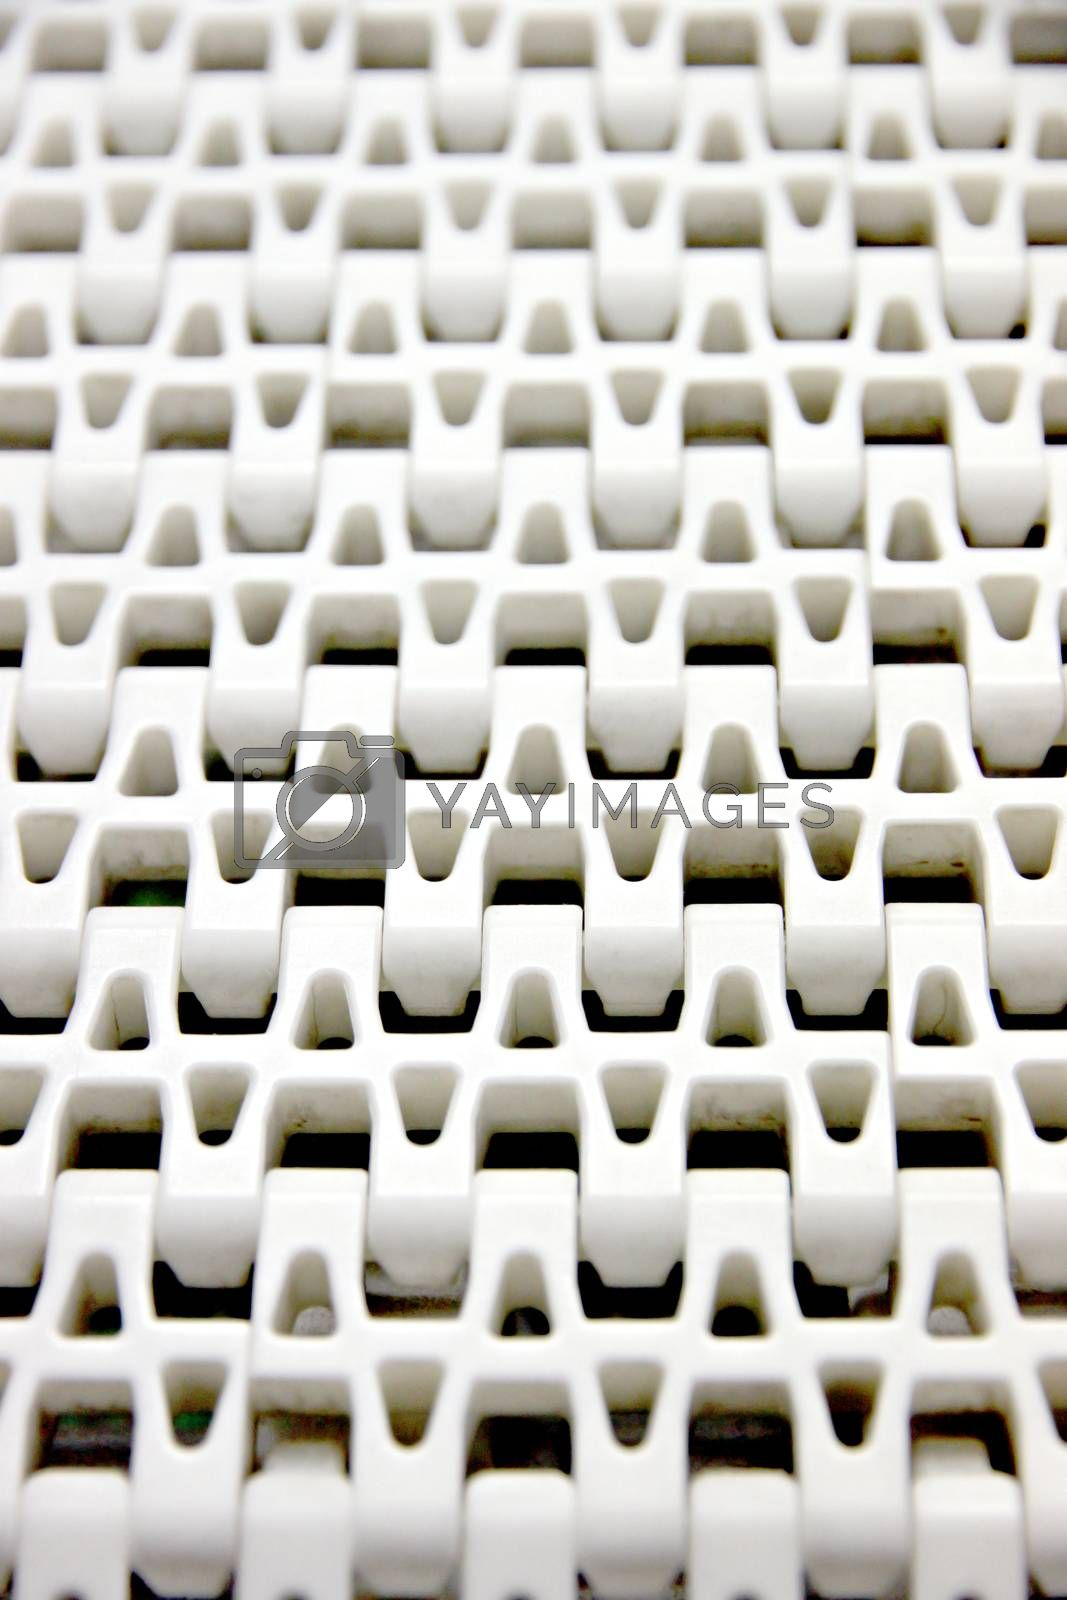 Patterns of white plastic with a conveyor belt. by PiyaPhoto